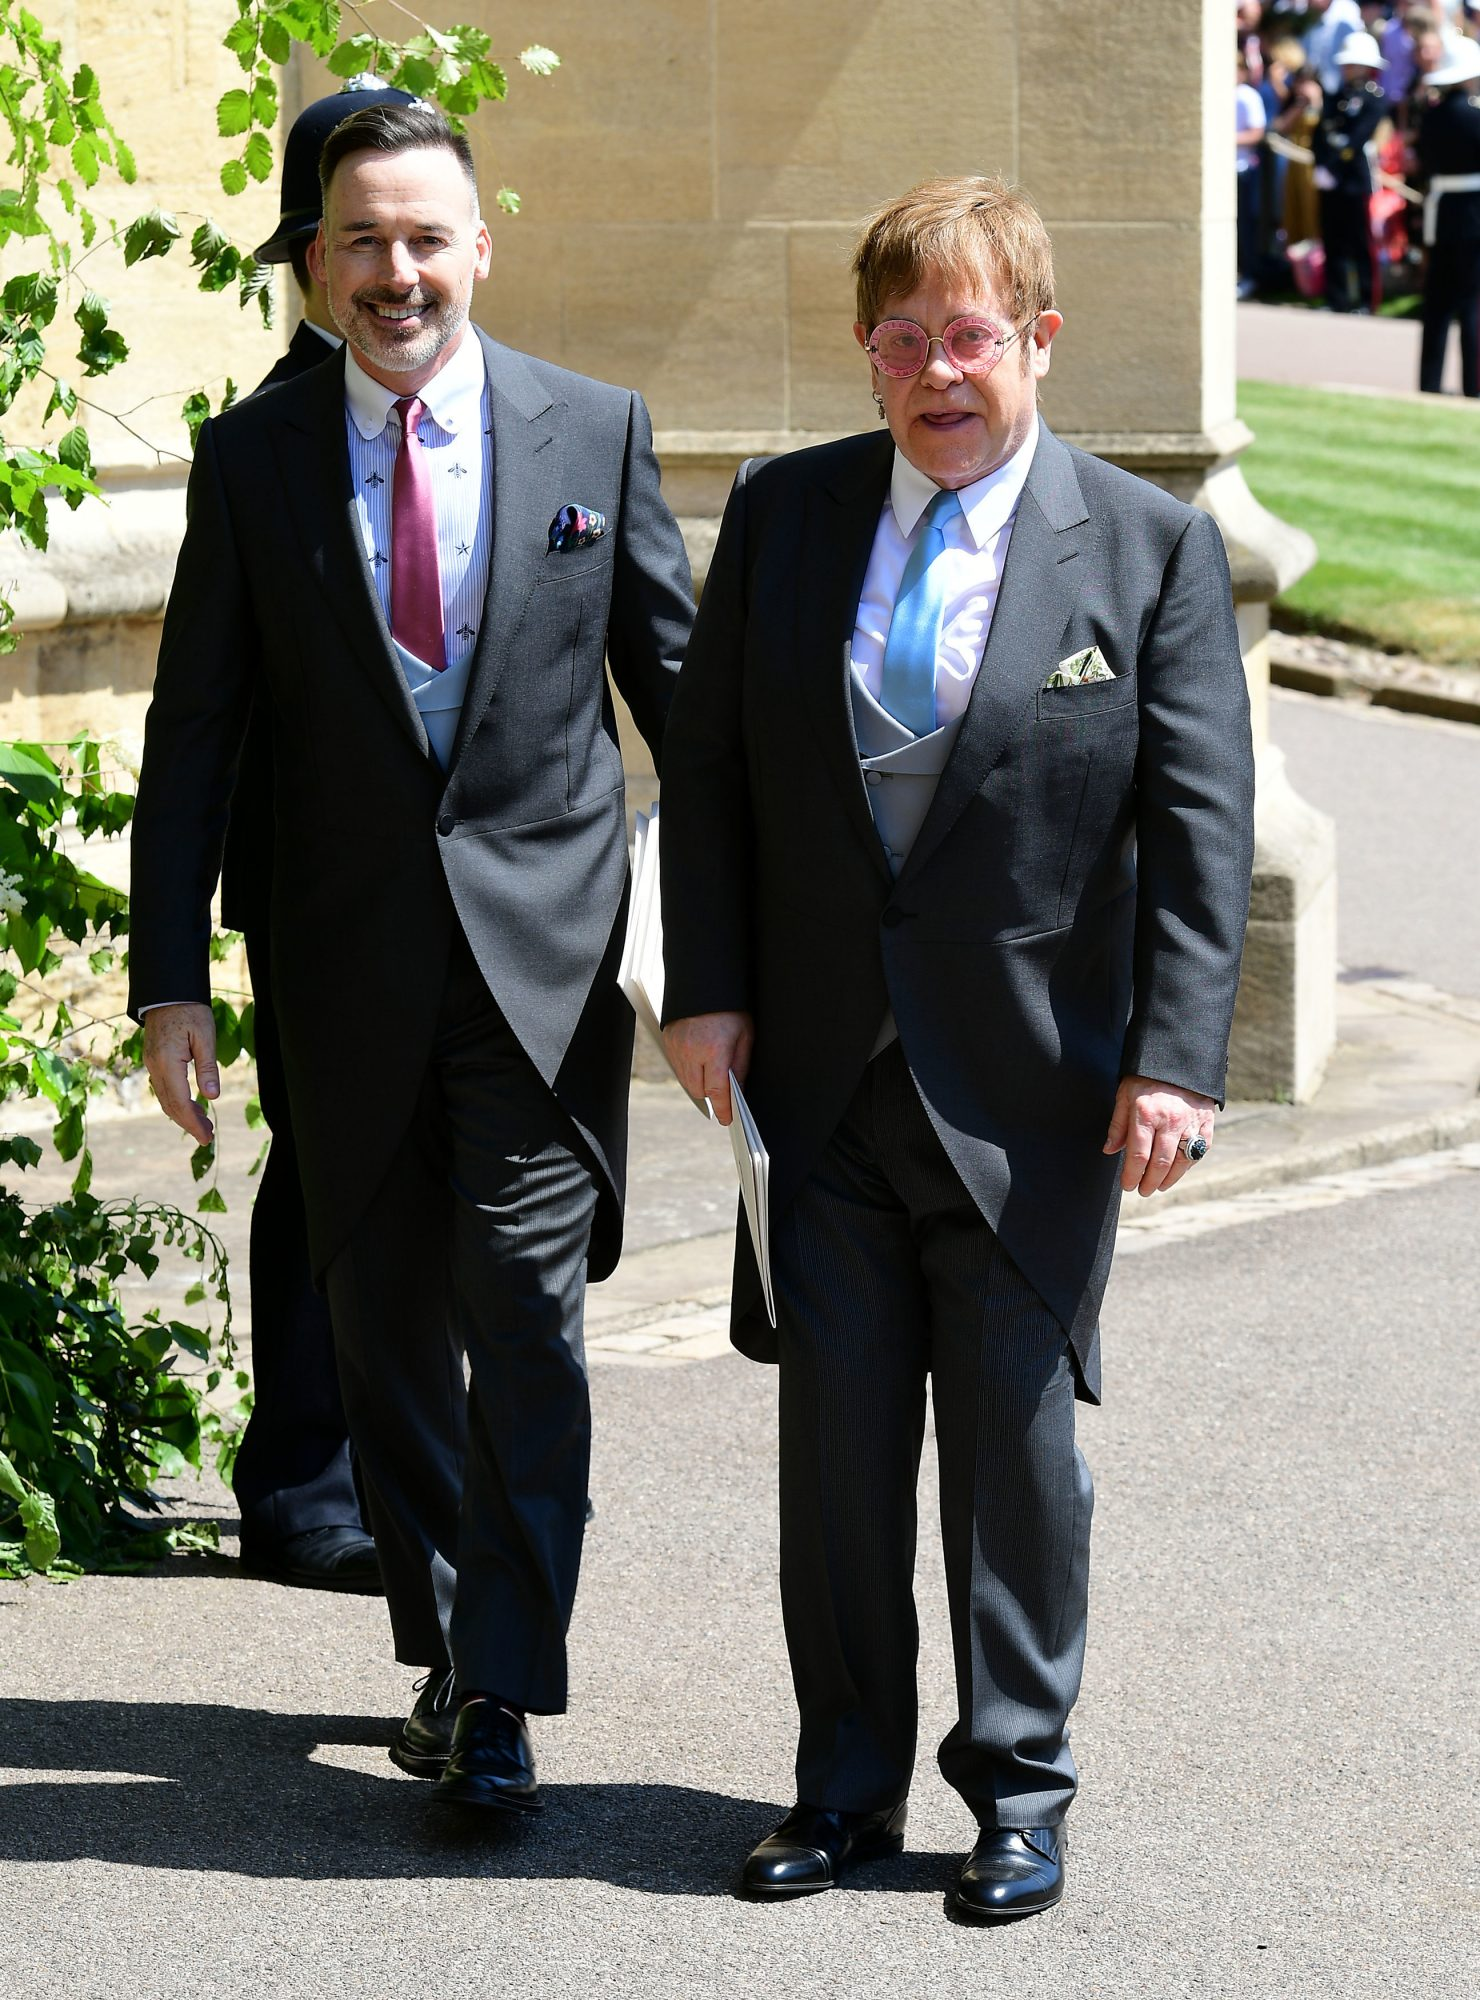 Elton John and David Furnish royal wedding 2018